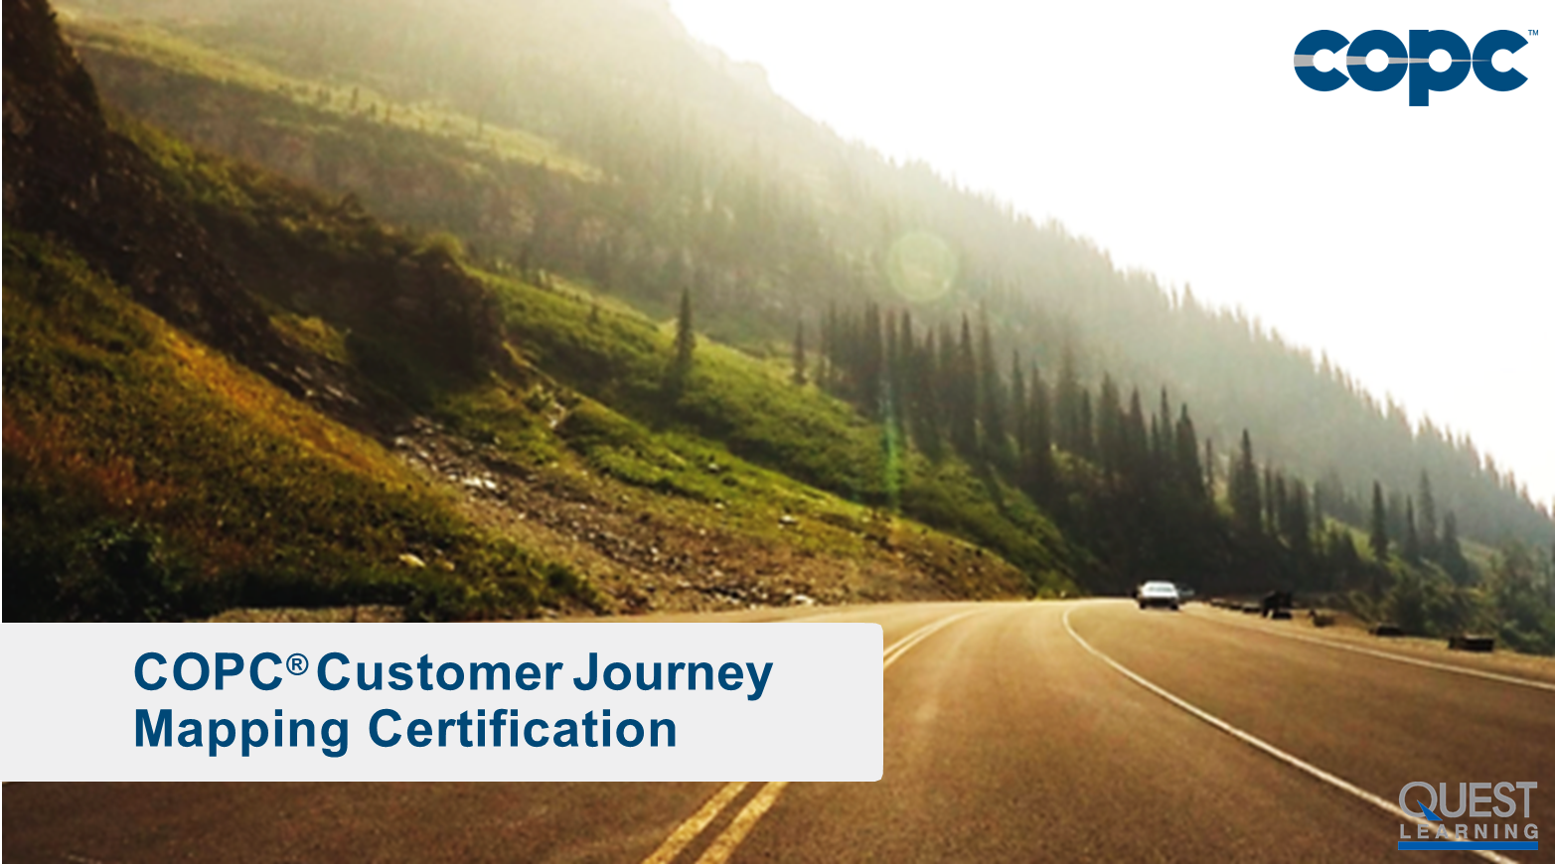 Copc Customer Journey Mapping Certification